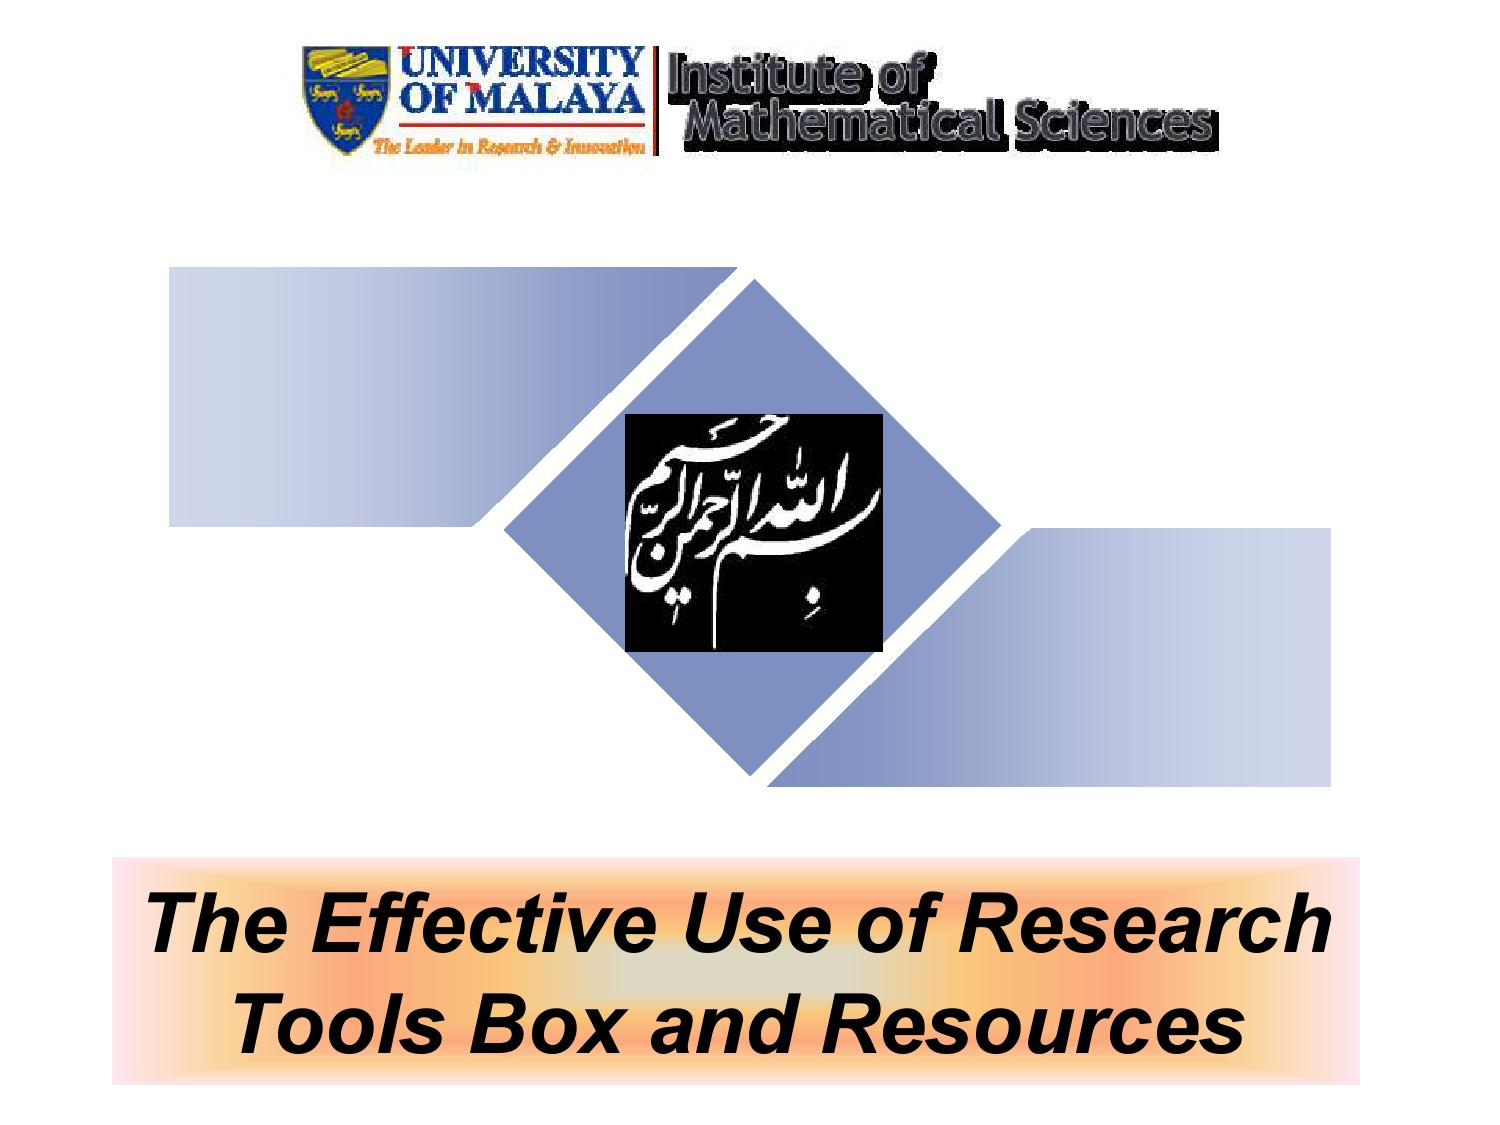 um the effective use of research tools box and resources